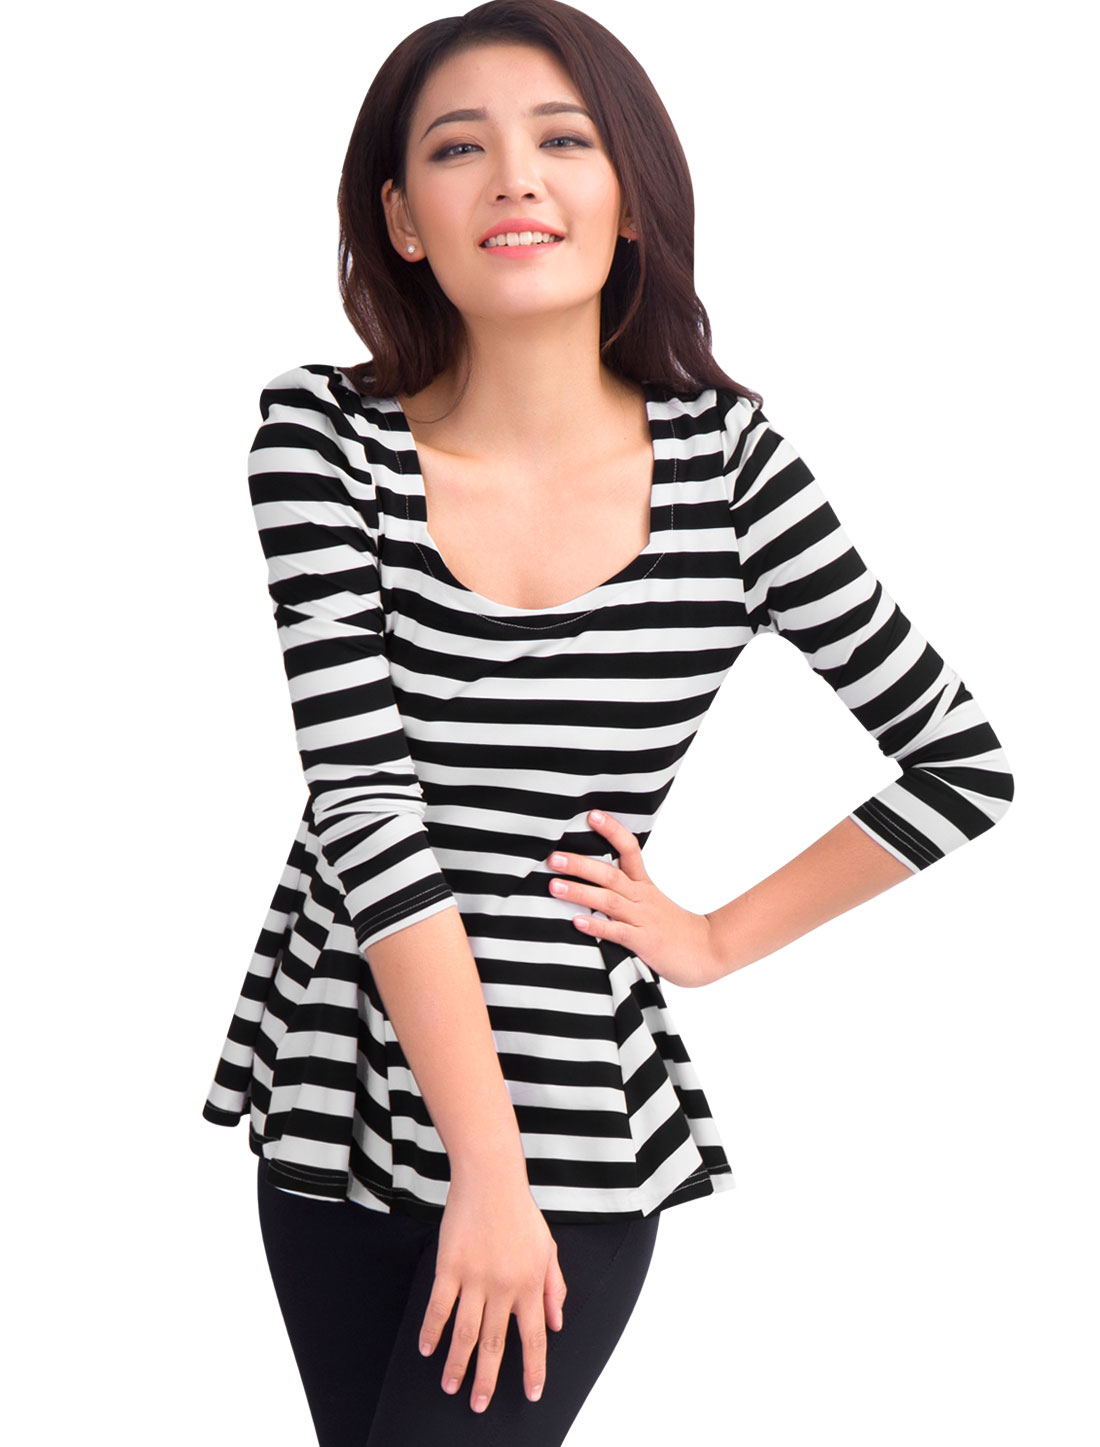 Woman Black White Stripes Print Scoop Neck Padded Shoulder Slim Tunic Shirt L